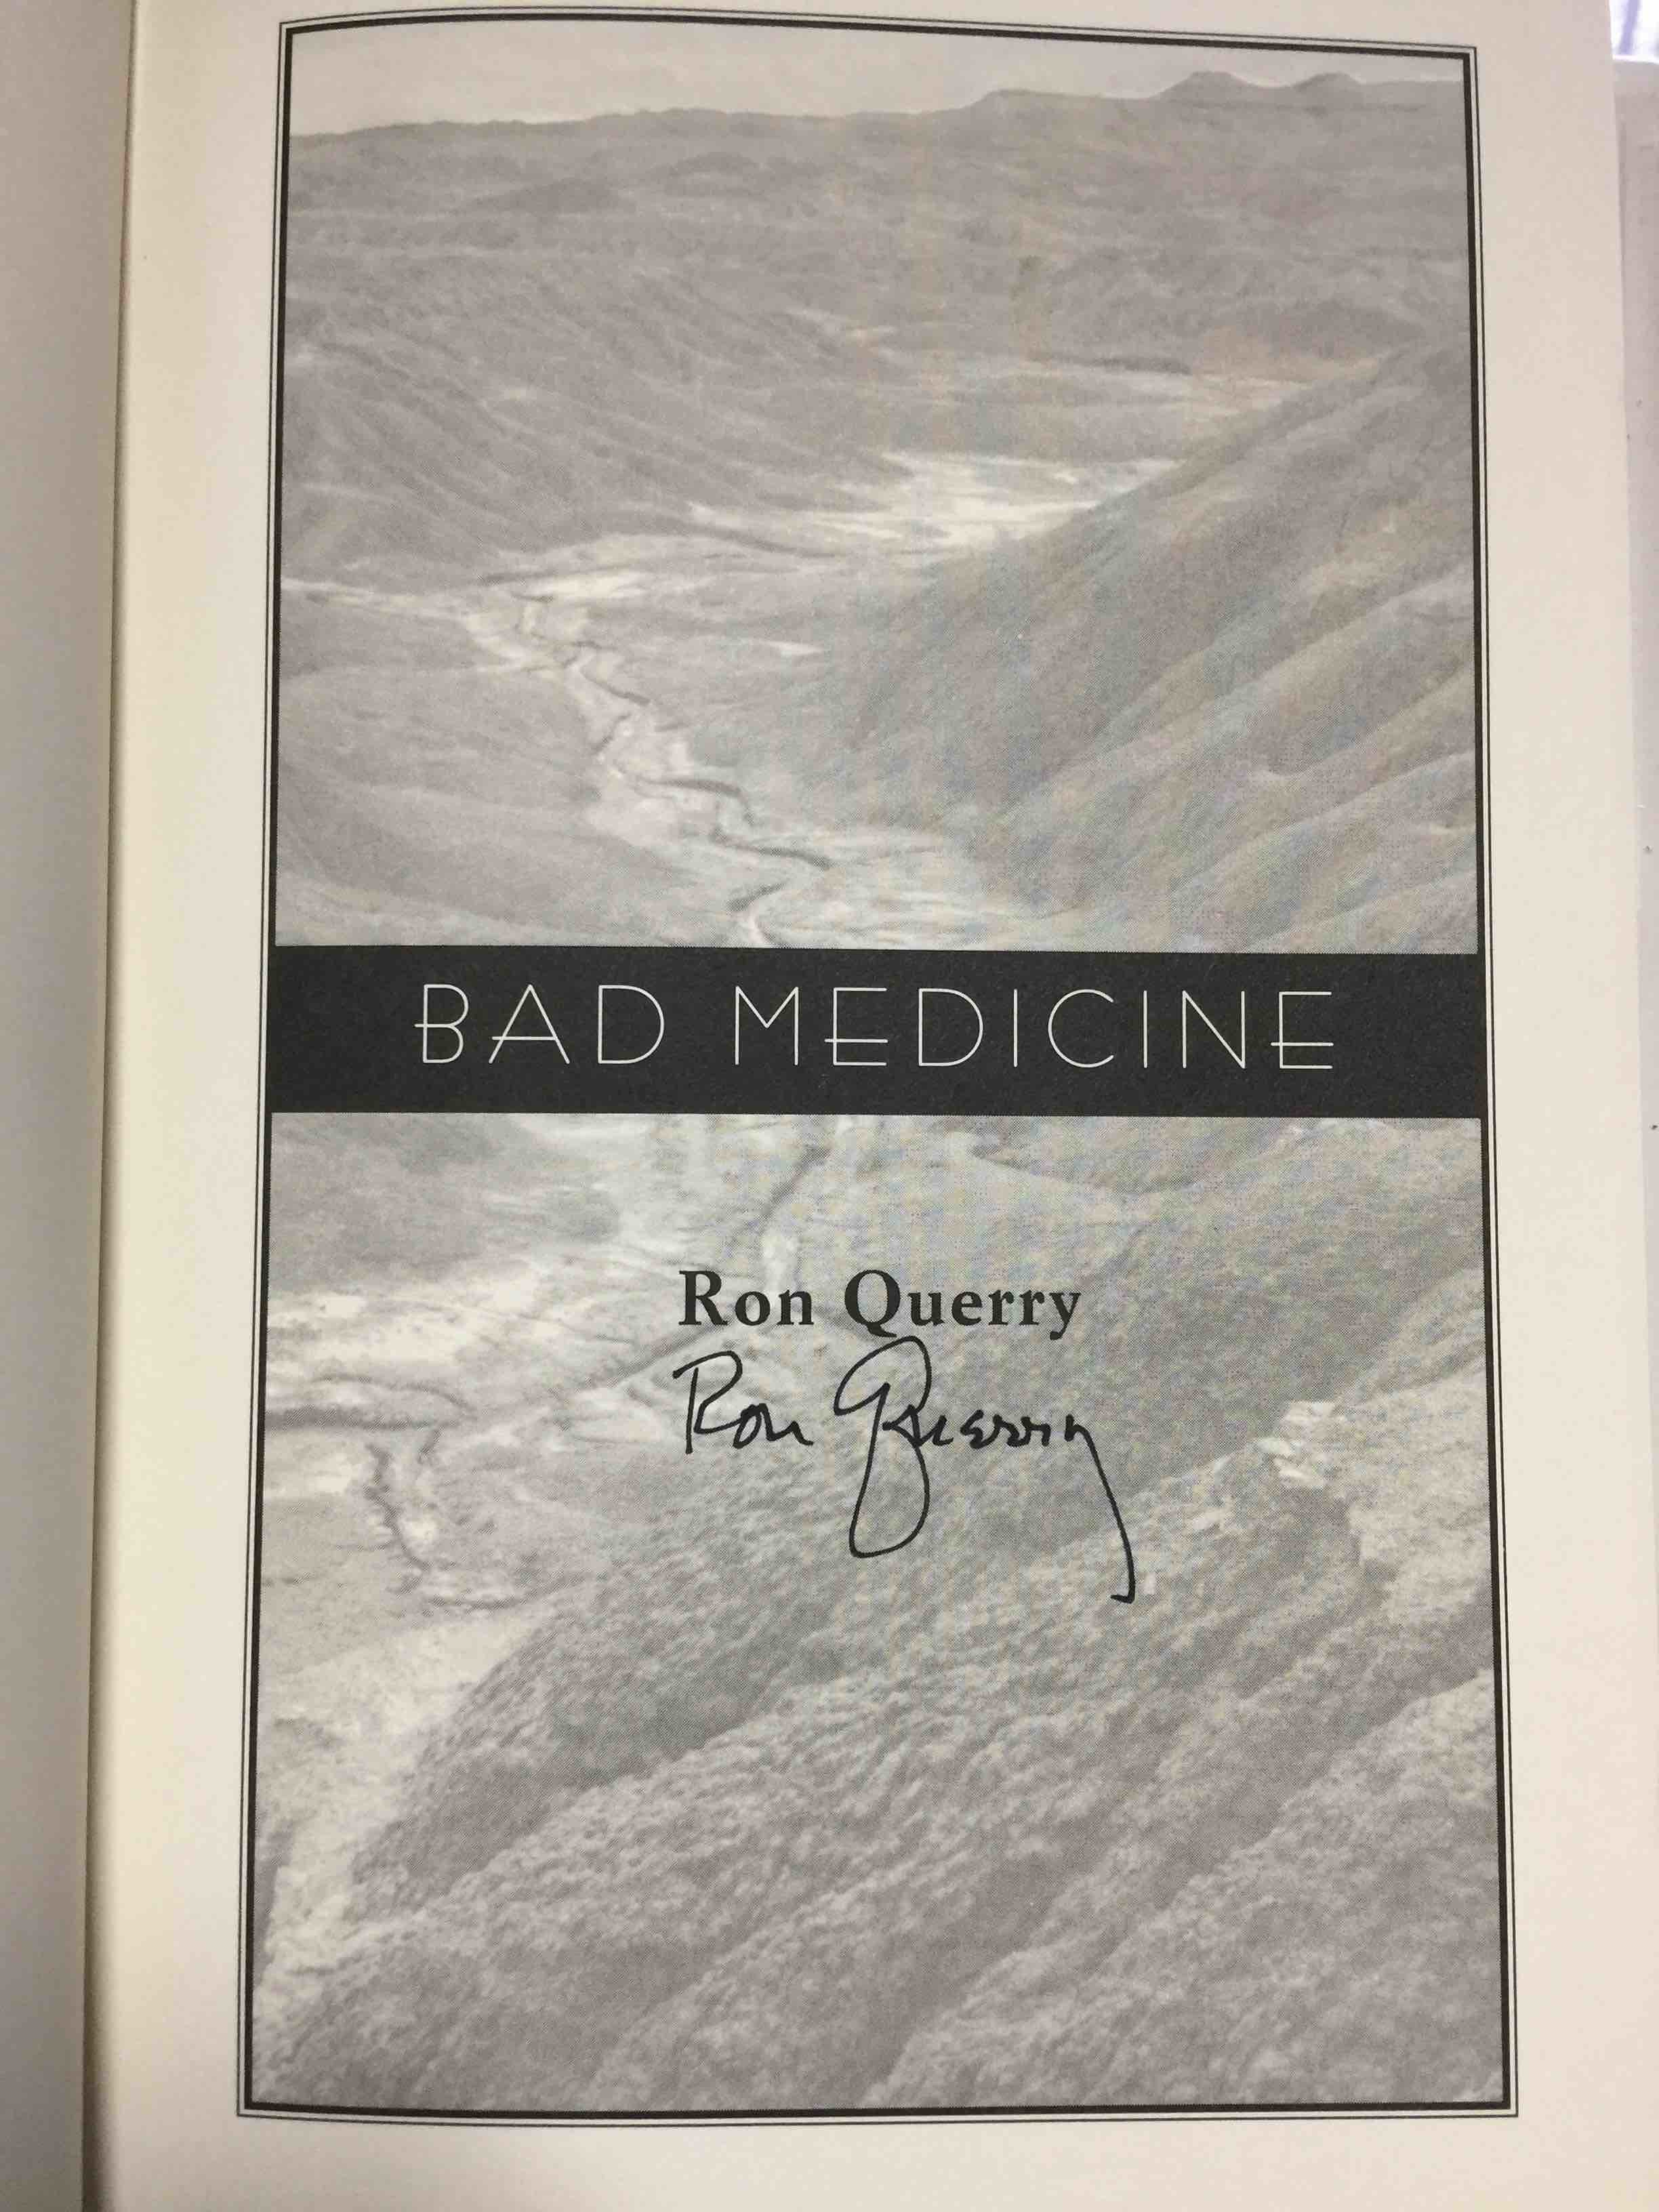 Book cover picture of Querry, Ron.  BAD MEDICINE. New York: Bantam, (1998.)